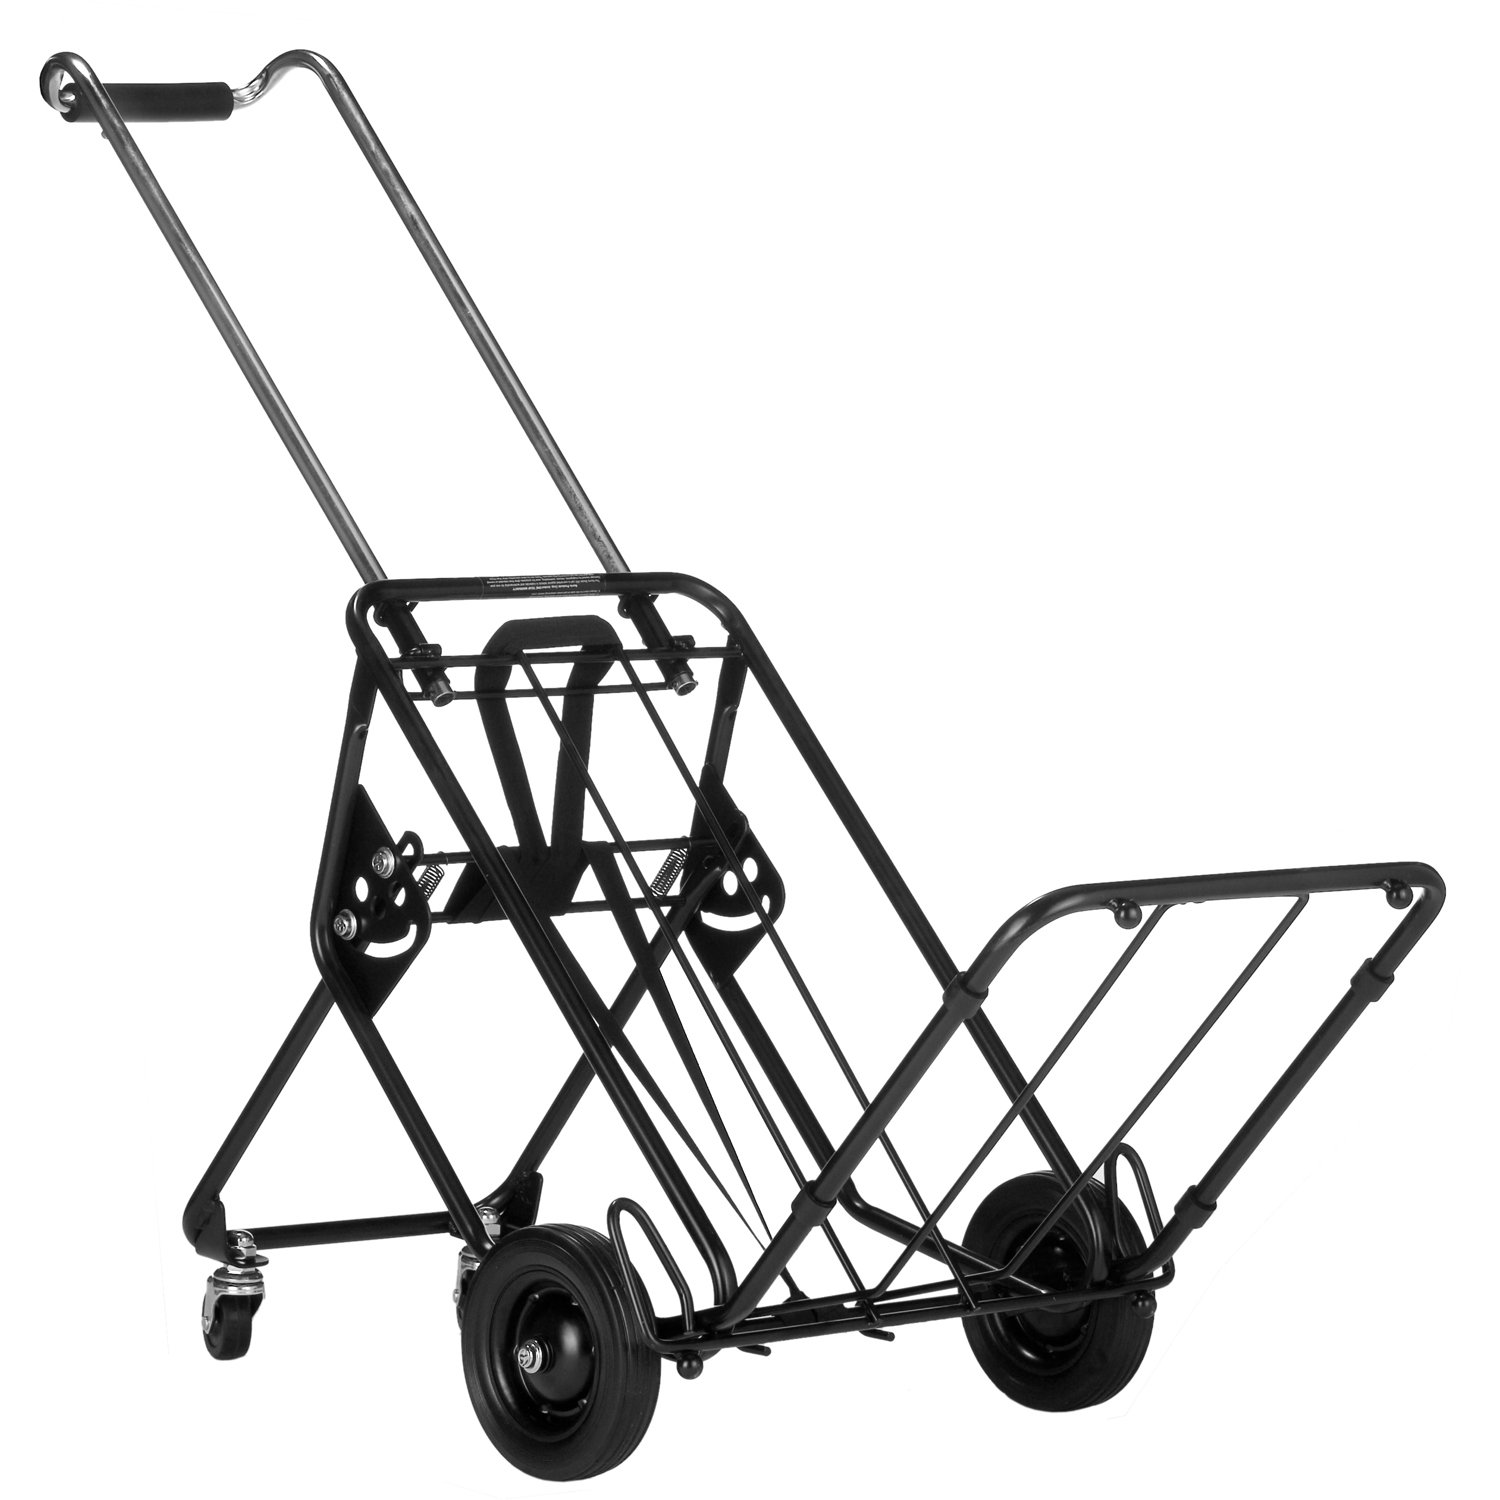 Norris 450 250-Pound Capacity Telescoping Utility Cart by Norris B0032FPIC0